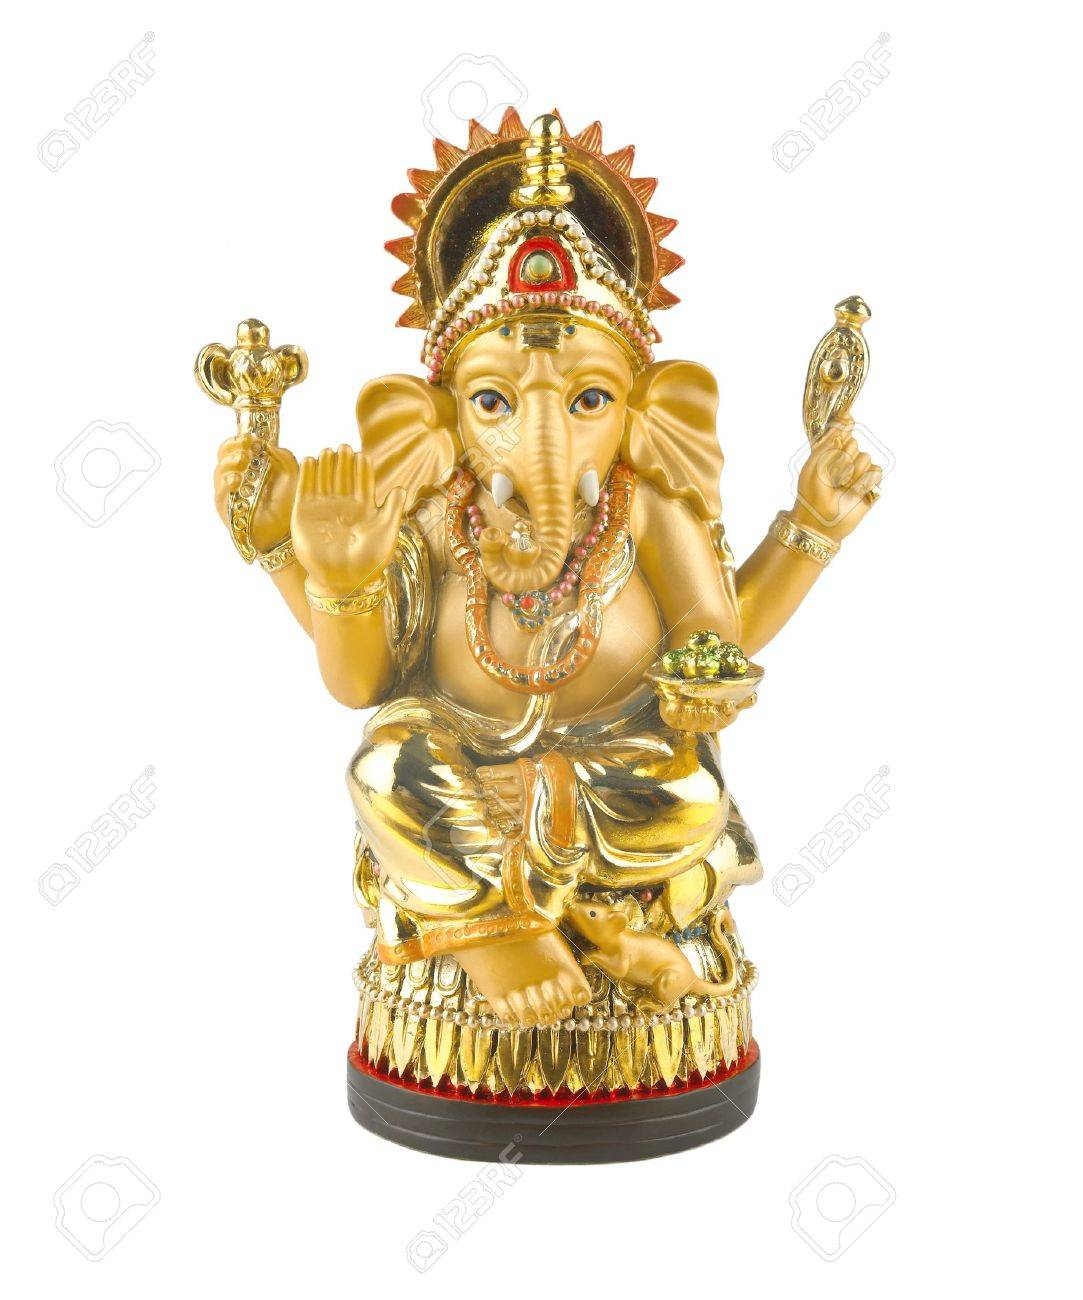 Golden hindu god ganesh Stock Photo - 18514830